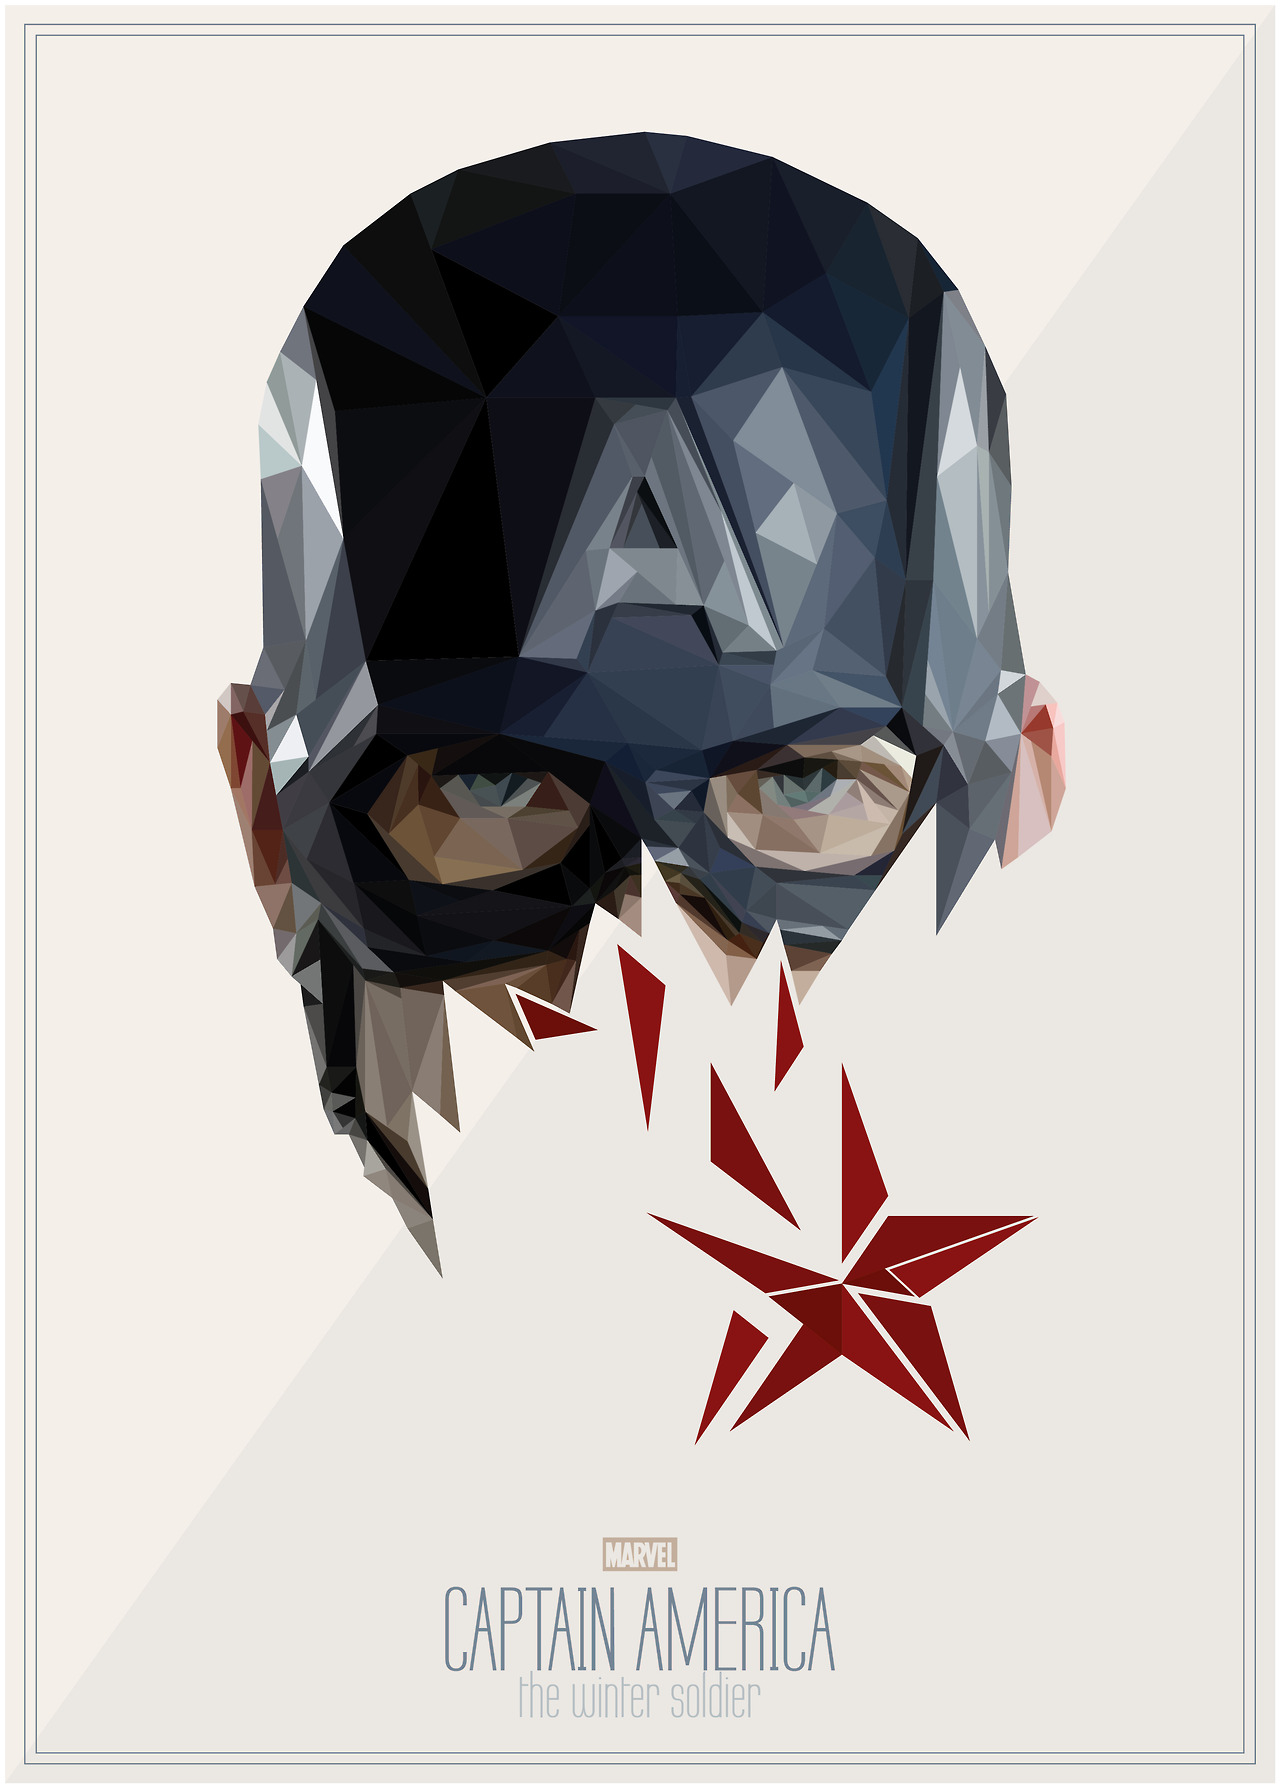 simon-delart-superhero-triangle-illustrations-captain-america